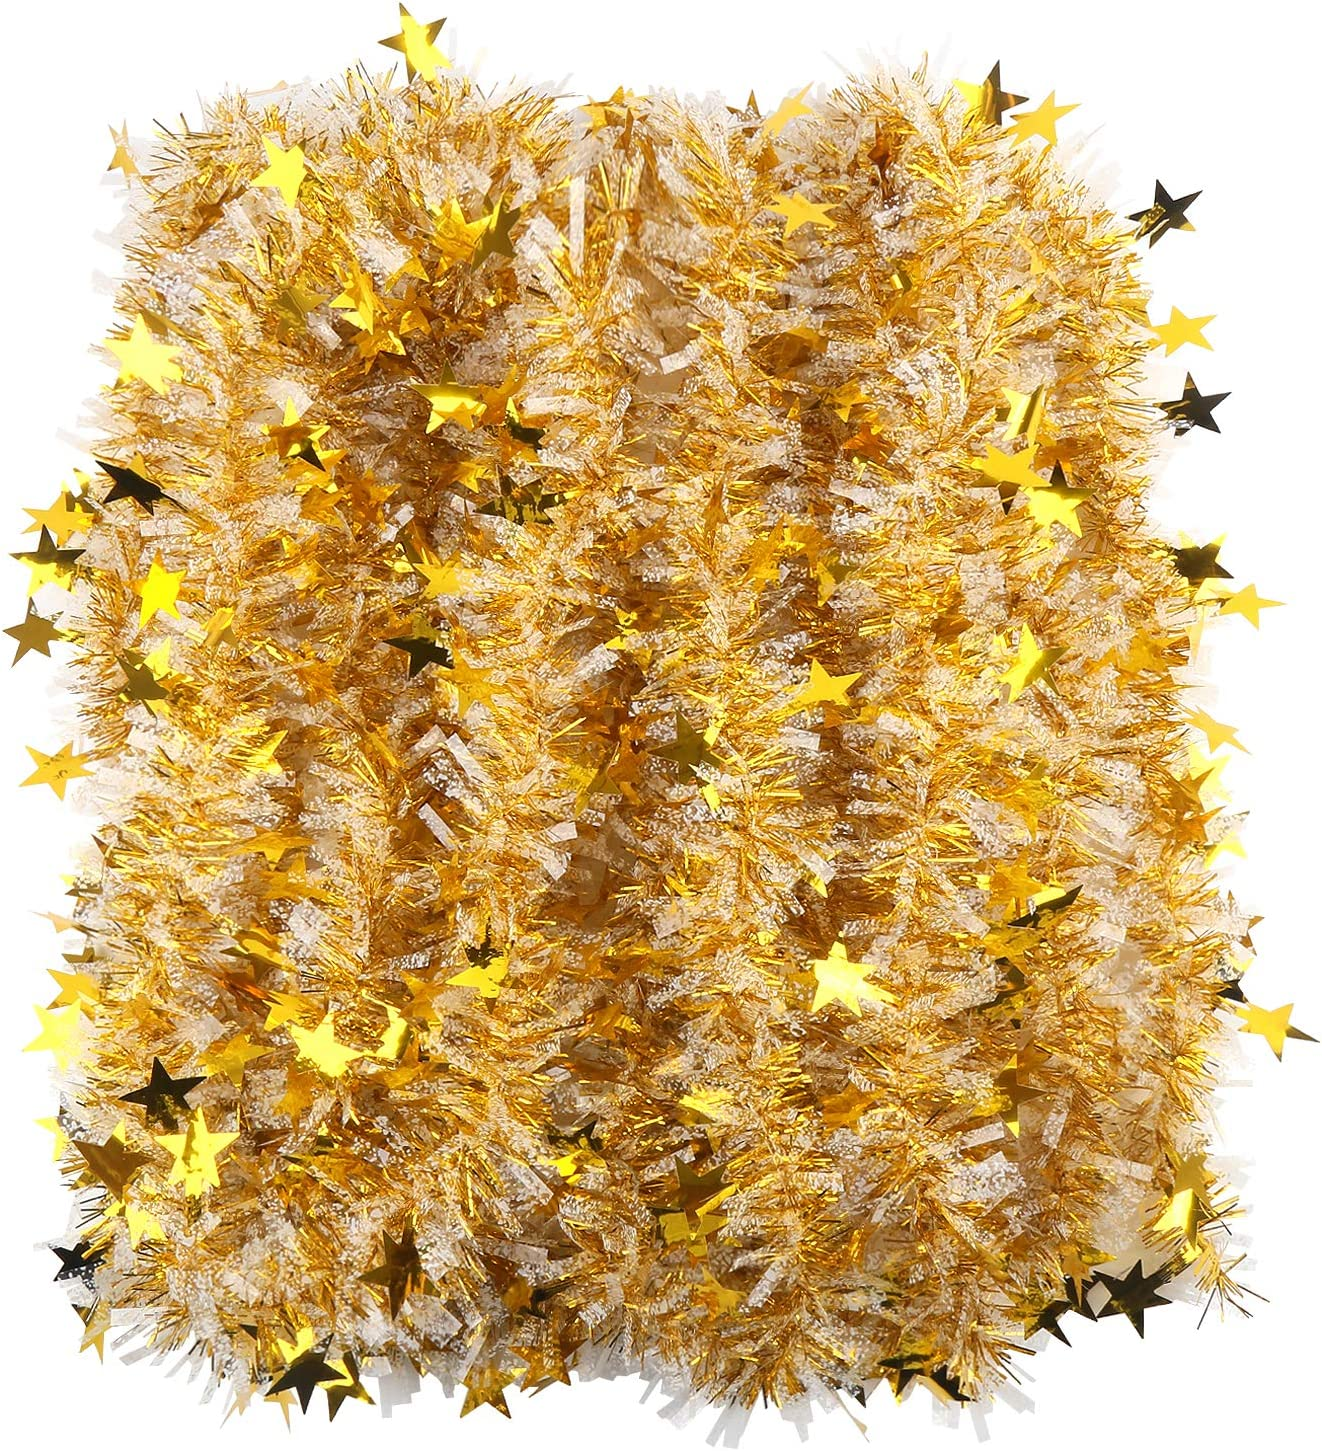 CCINEE 33FT Christmas Tinsel Garland,Metallic Twist Garland in Gold and White for Christmas Tree Party Dcoration Supply